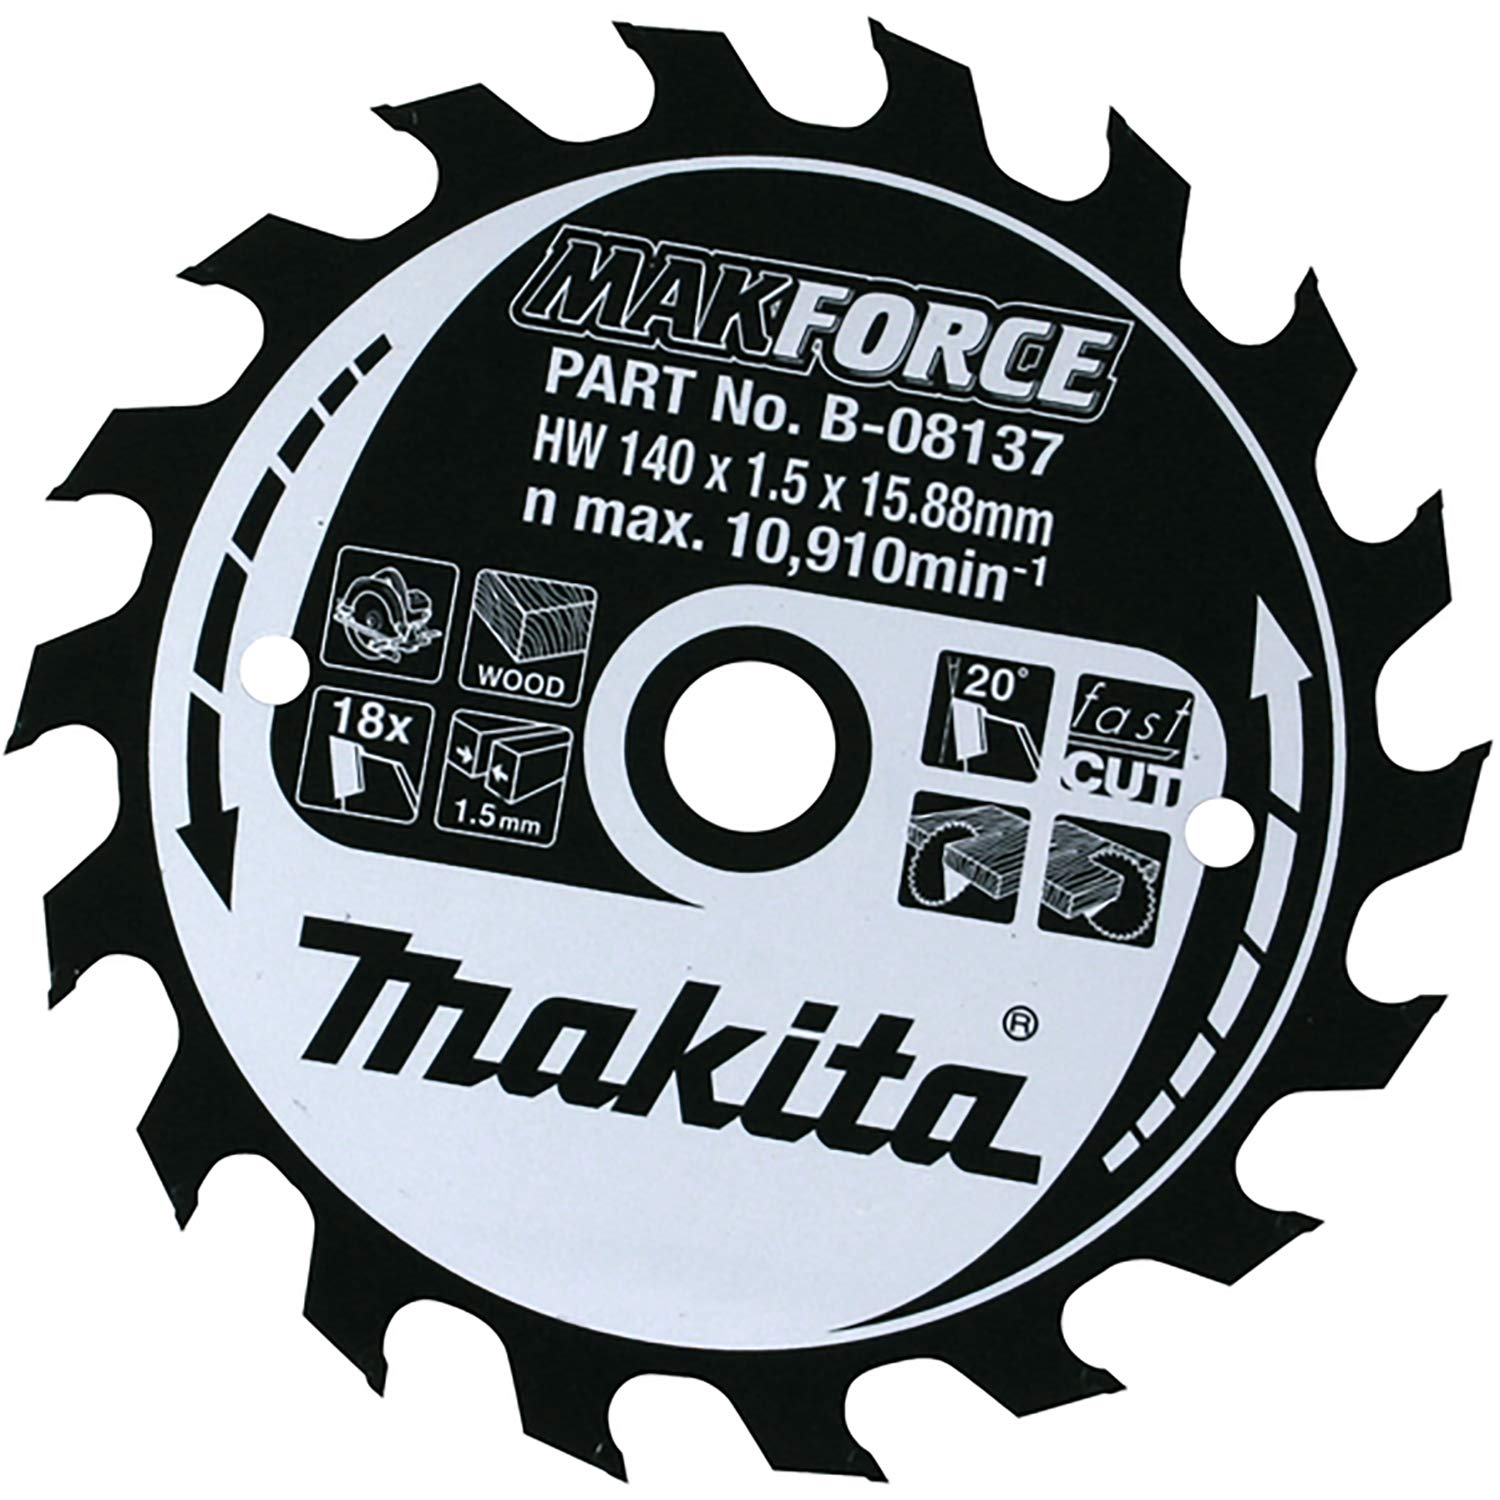 Makita B-08573 Blade blade 270mm diameter tee x 60 bore Limited time for free shipping Colorado Springs Mall 30mm